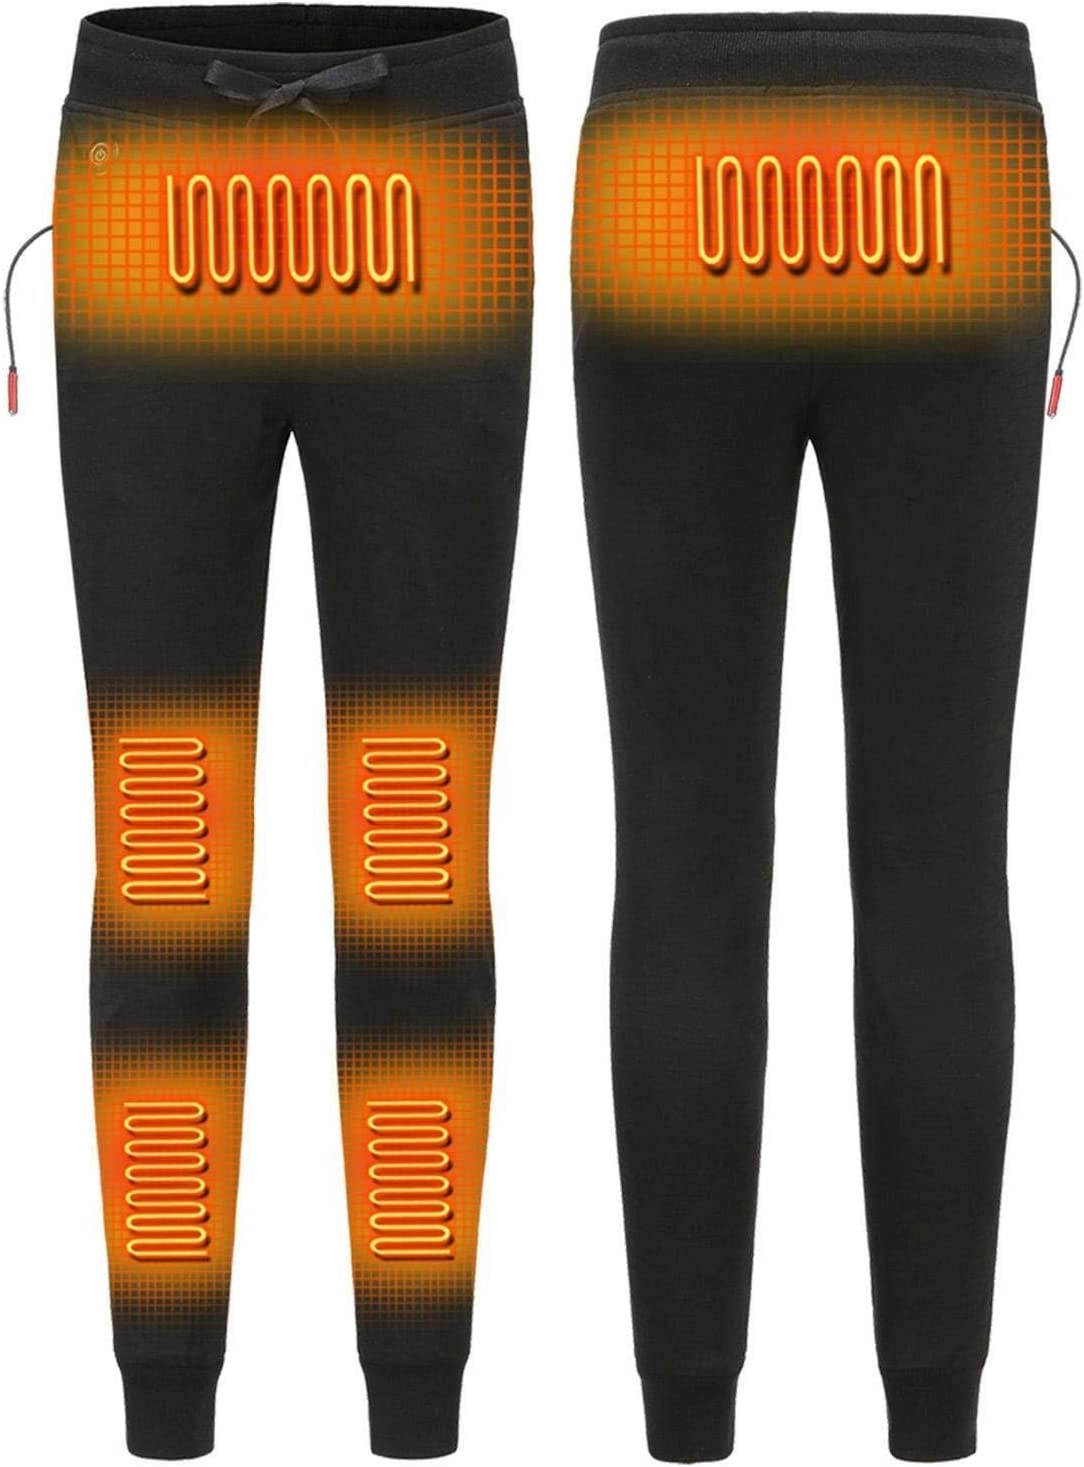 Heated Pants Electric USB Heating Thermal Underwear Heated Pants Washable Thermal Pants Three-Speed Temperature Control